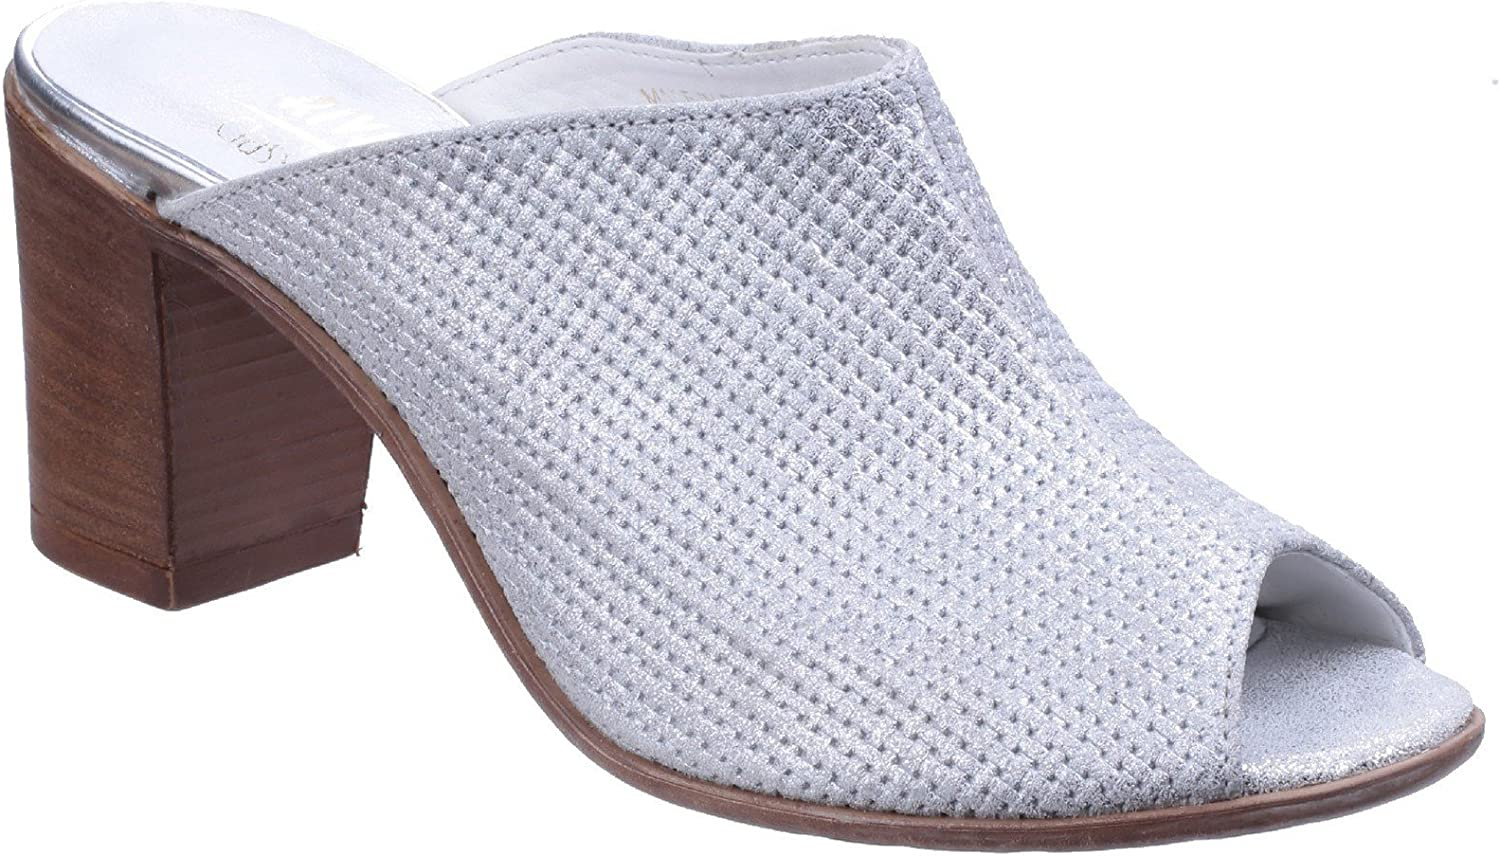 Riva Womens Rocco Sandal Ladies Summer shoes